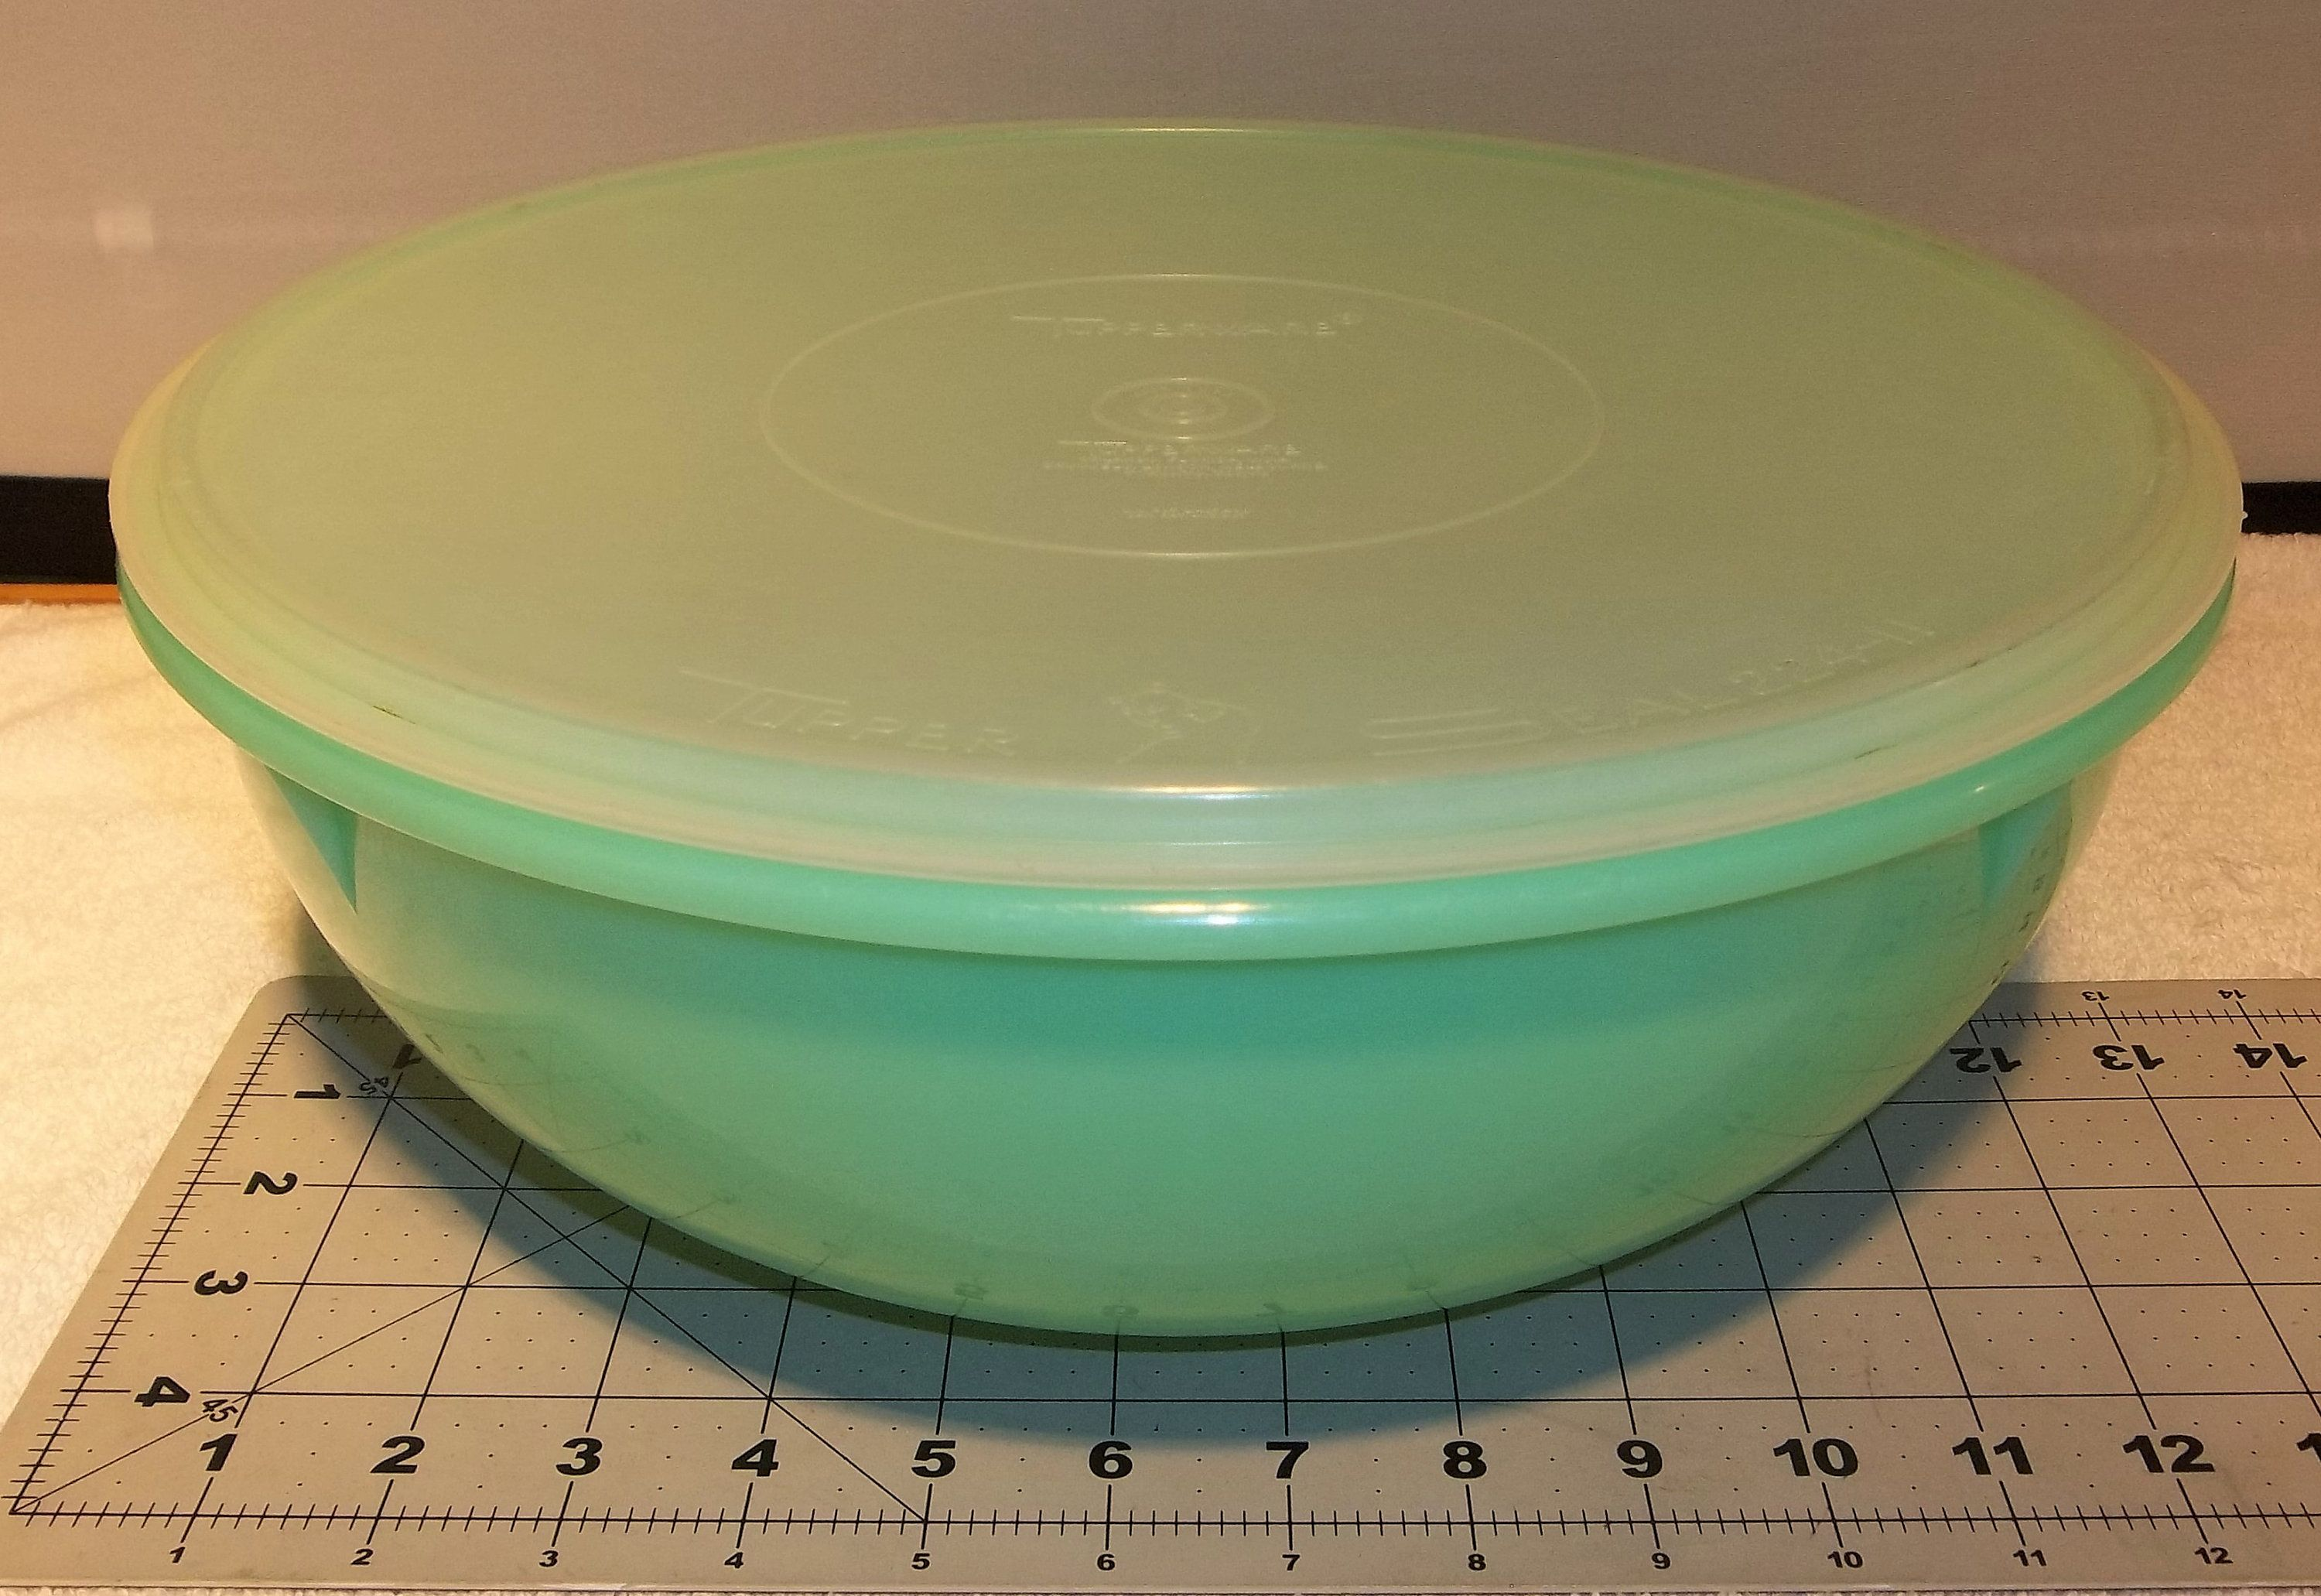 Large Vintage Tupperware Jadeite Green Fix N Mix Bowl and Lid Antique Collectible Container Retro Kitchen Ware Holiday Keeper Mixing Storage #kitchenware